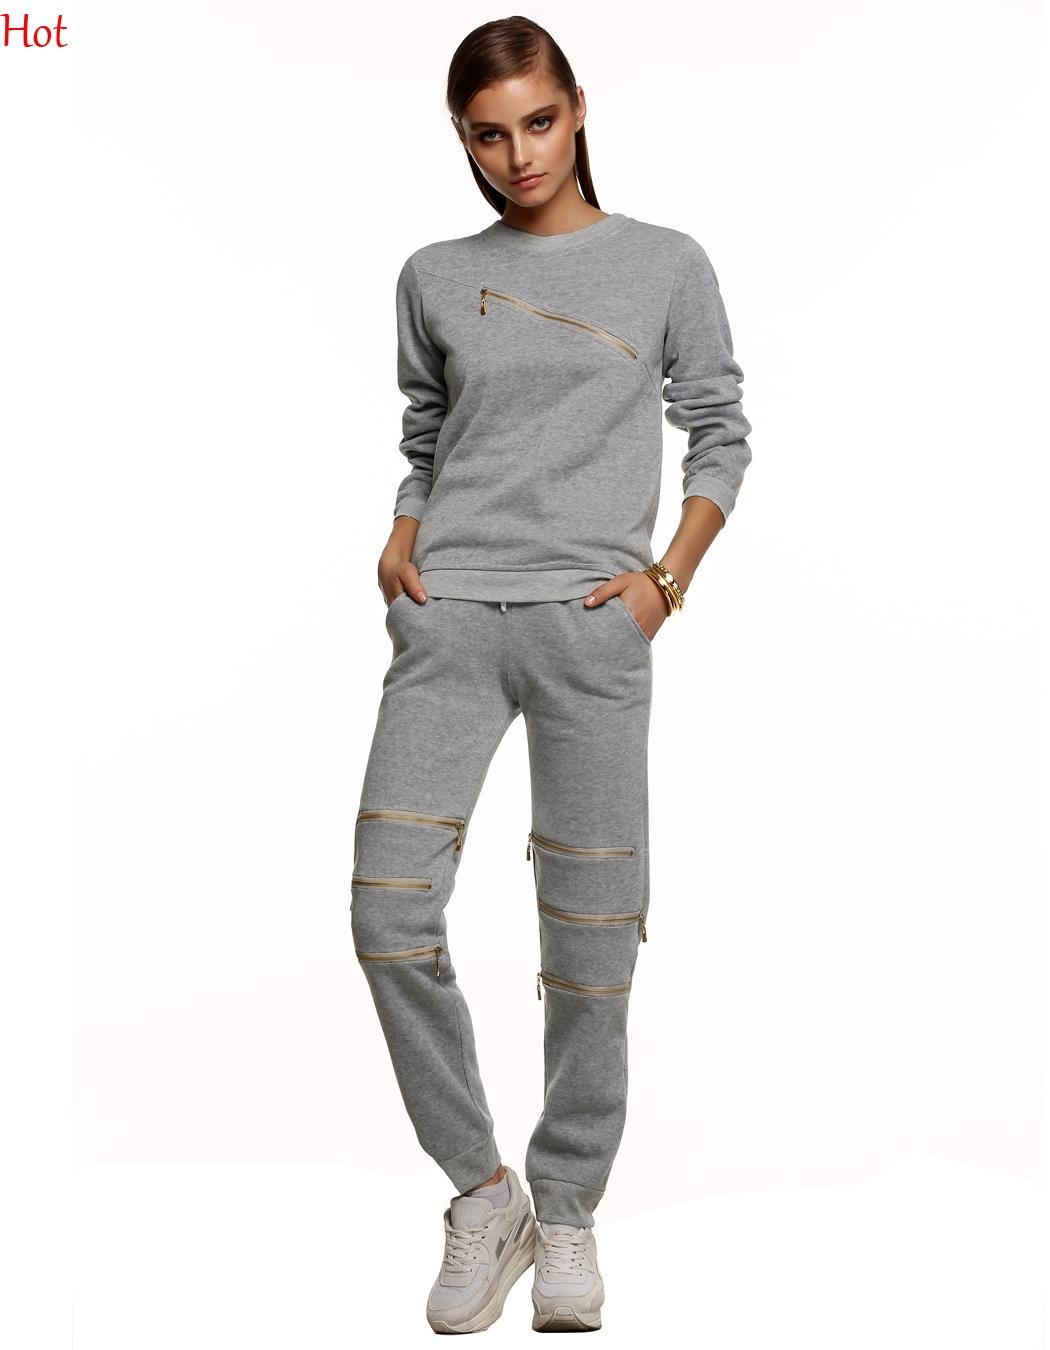 Women's Tracksuits (24) Add some flavor to your daily rotation with the latest styles of women's tracksuits from Nike. Choose from matching tracksuit sets or embrace your unique style and combine tops and bottoms designed in a variety of prints, fits and colors.